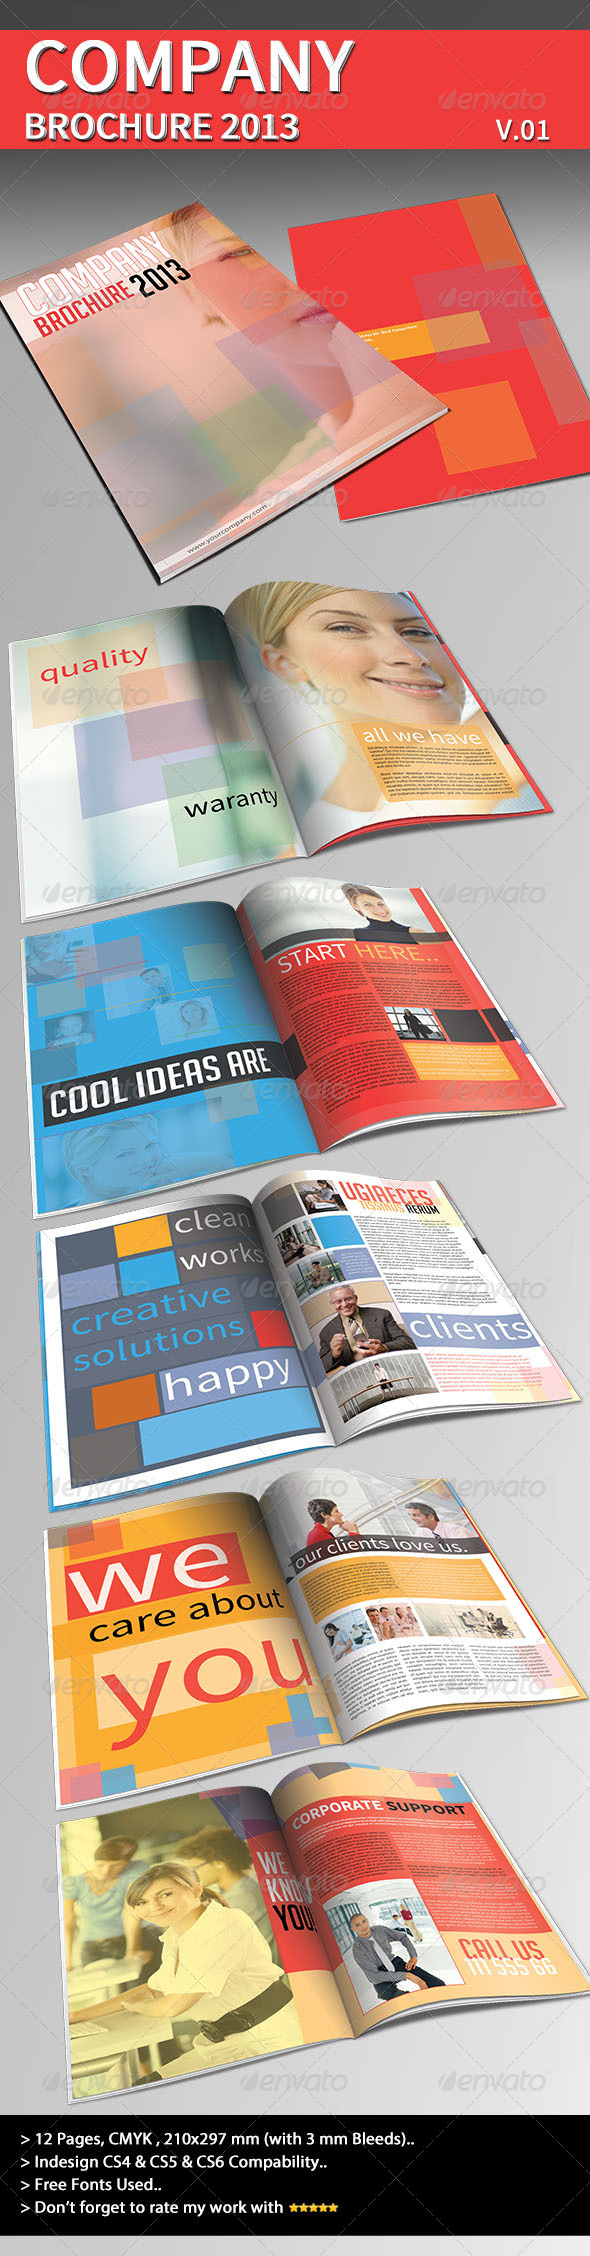 Company Brochure 2013 Part 01 - Informational Brochures